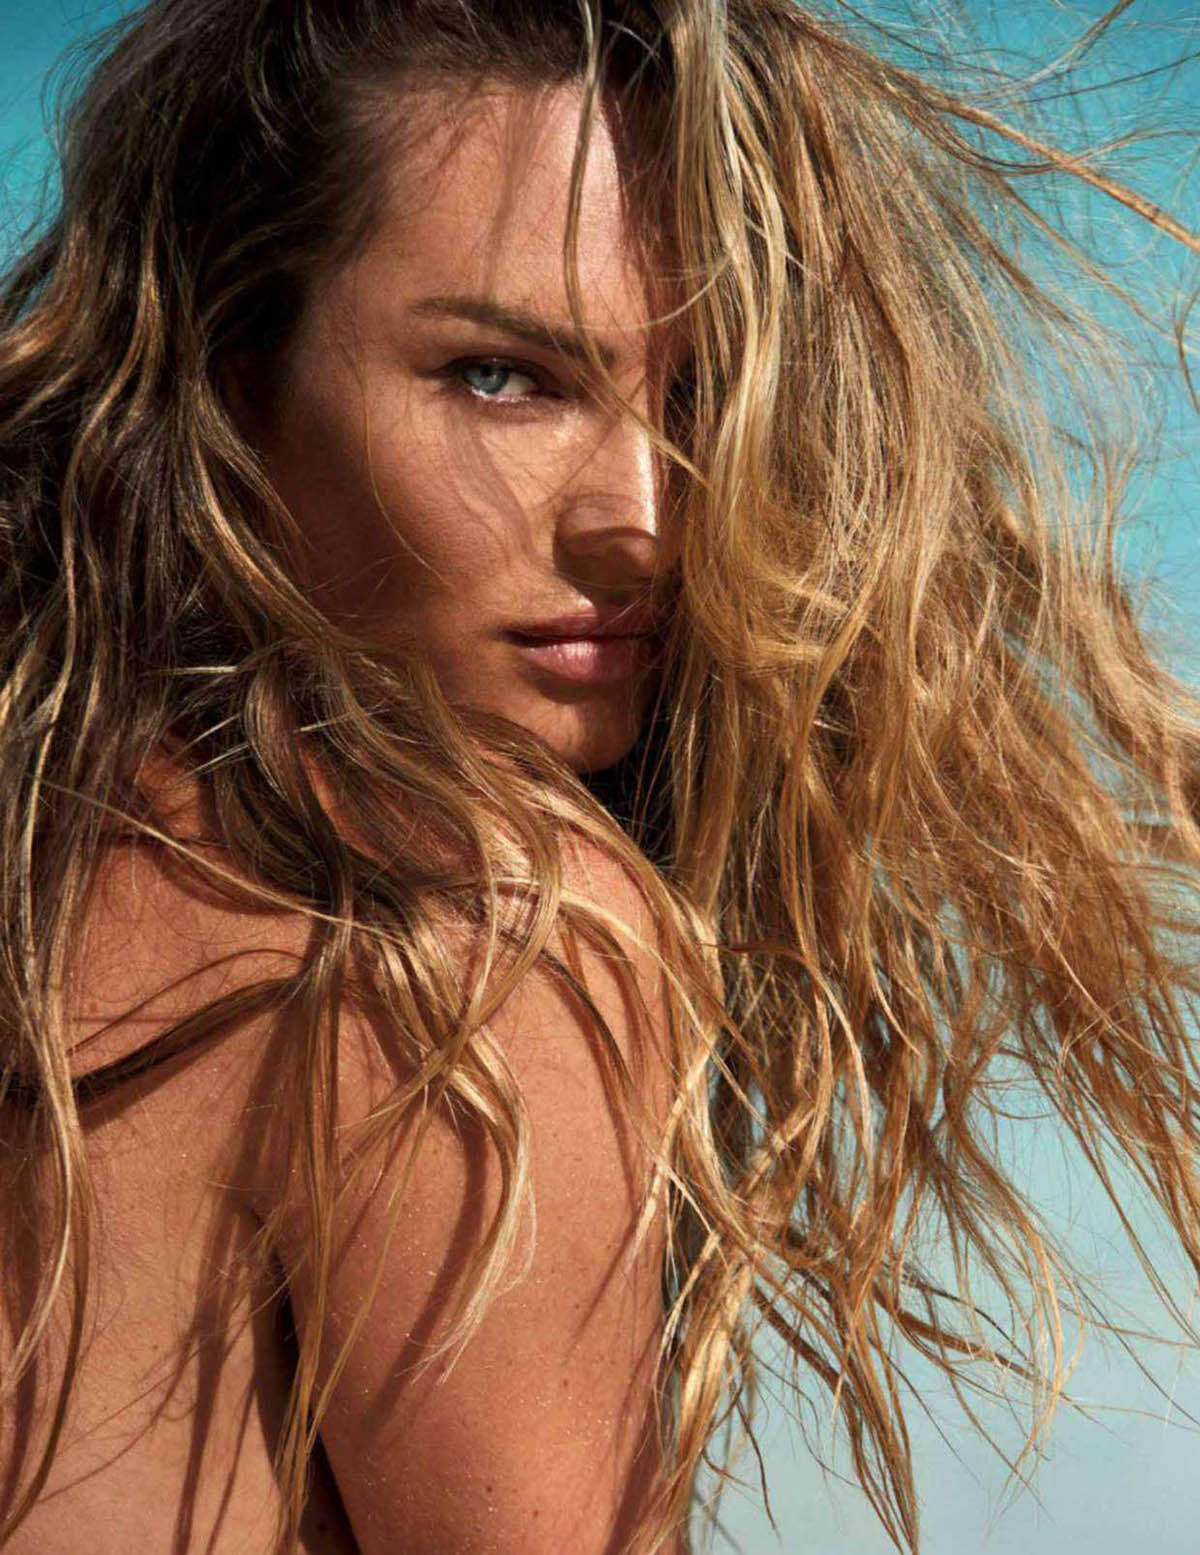 Candice Swanepoel covers Madame Figaro April 2nd, 2021 by David Roemer